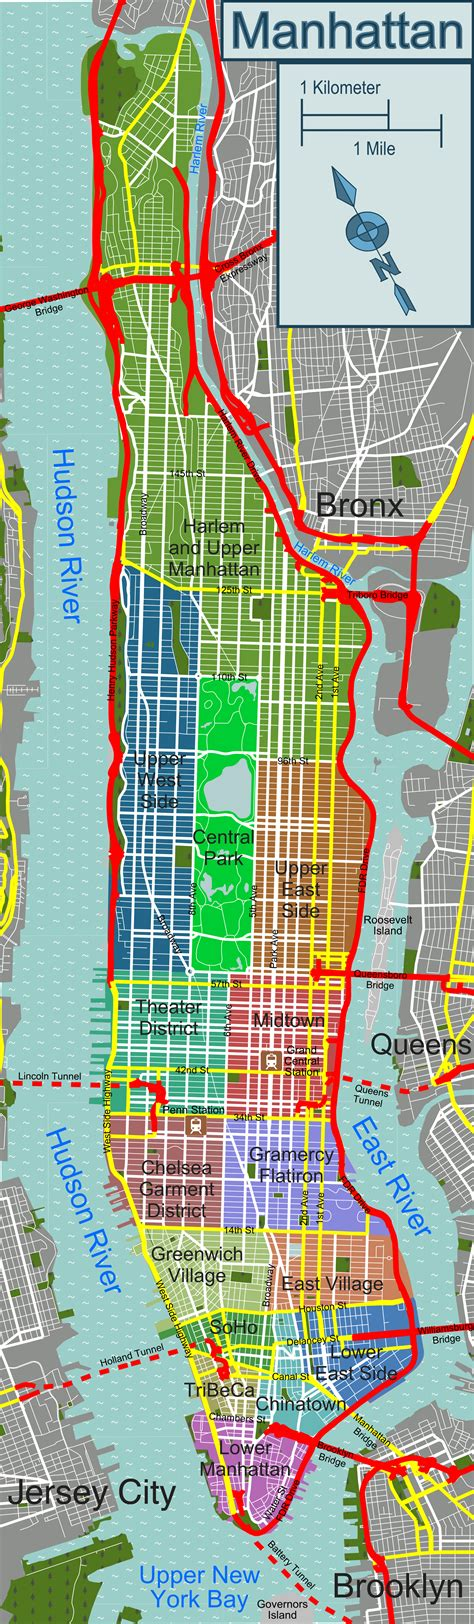 manhattan safety map technical information and team operations